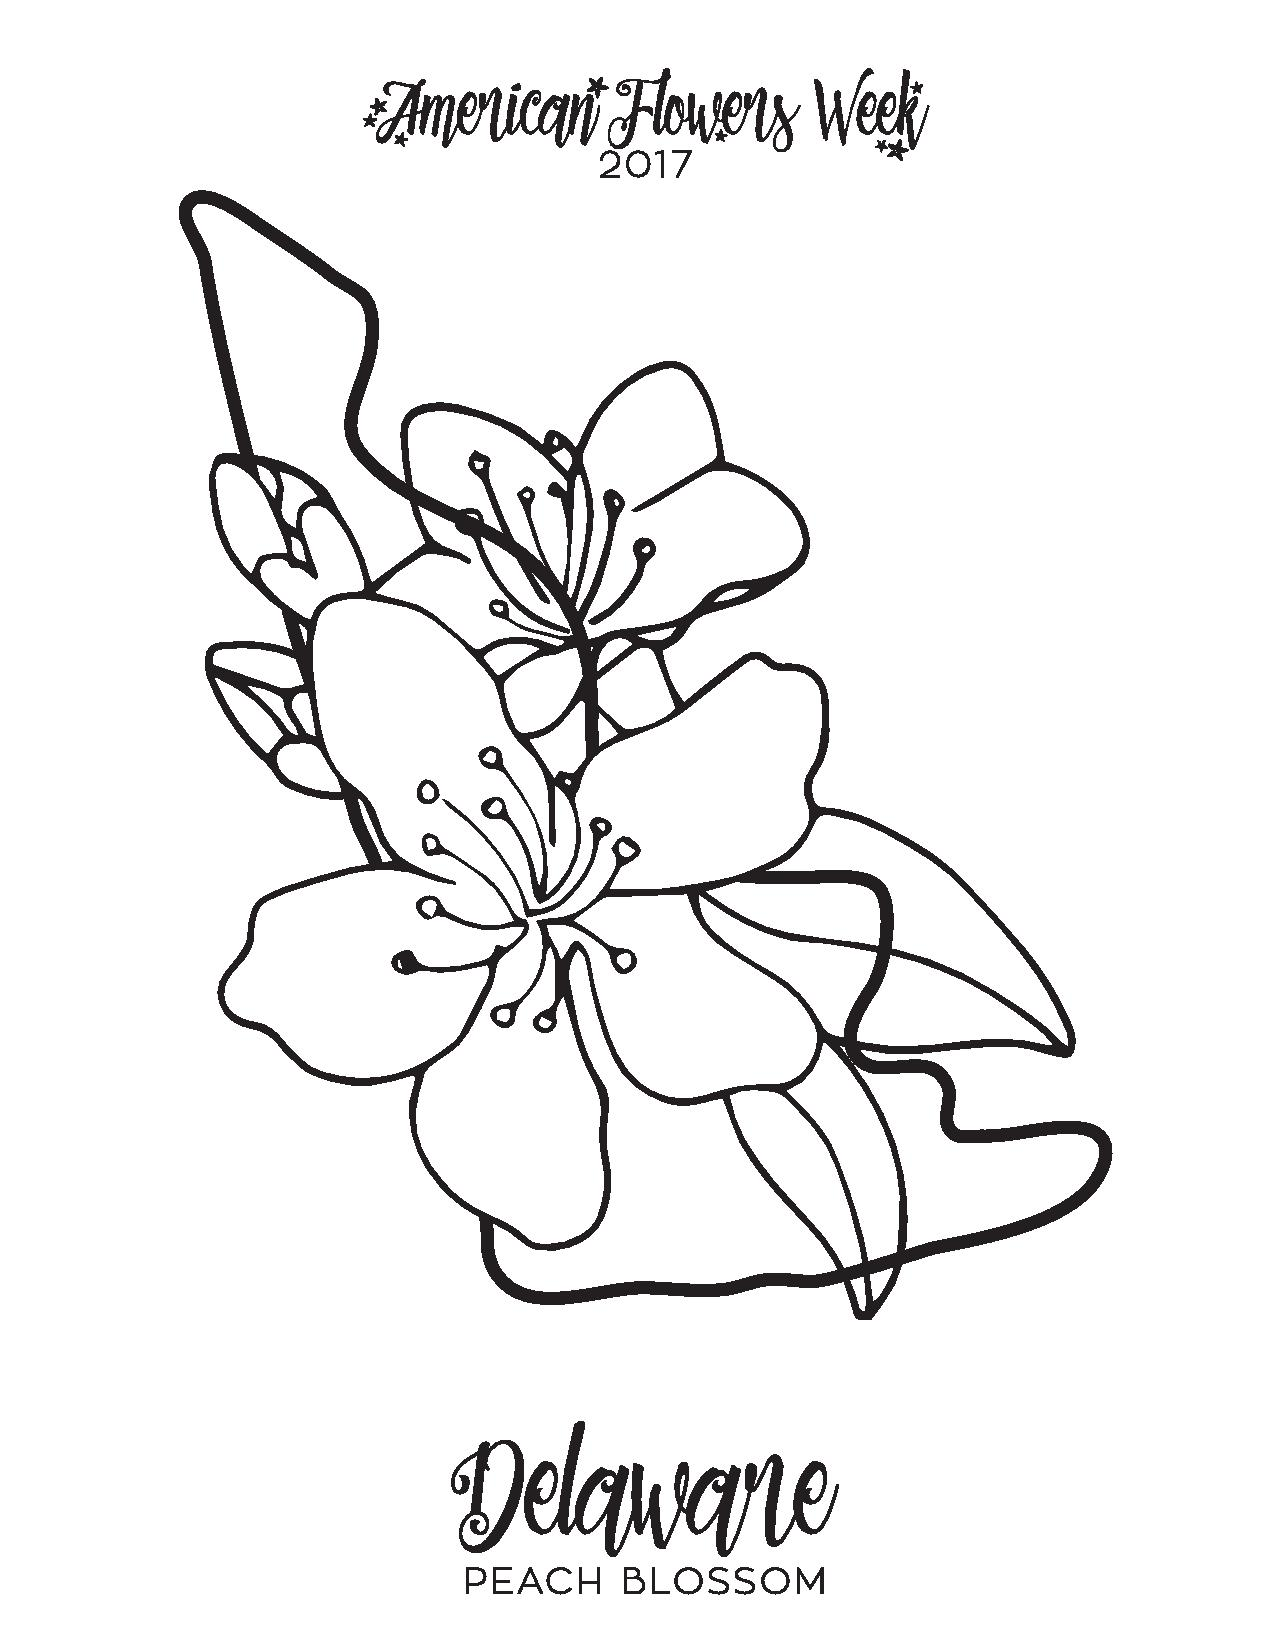 50 State Flowers Free Coloring